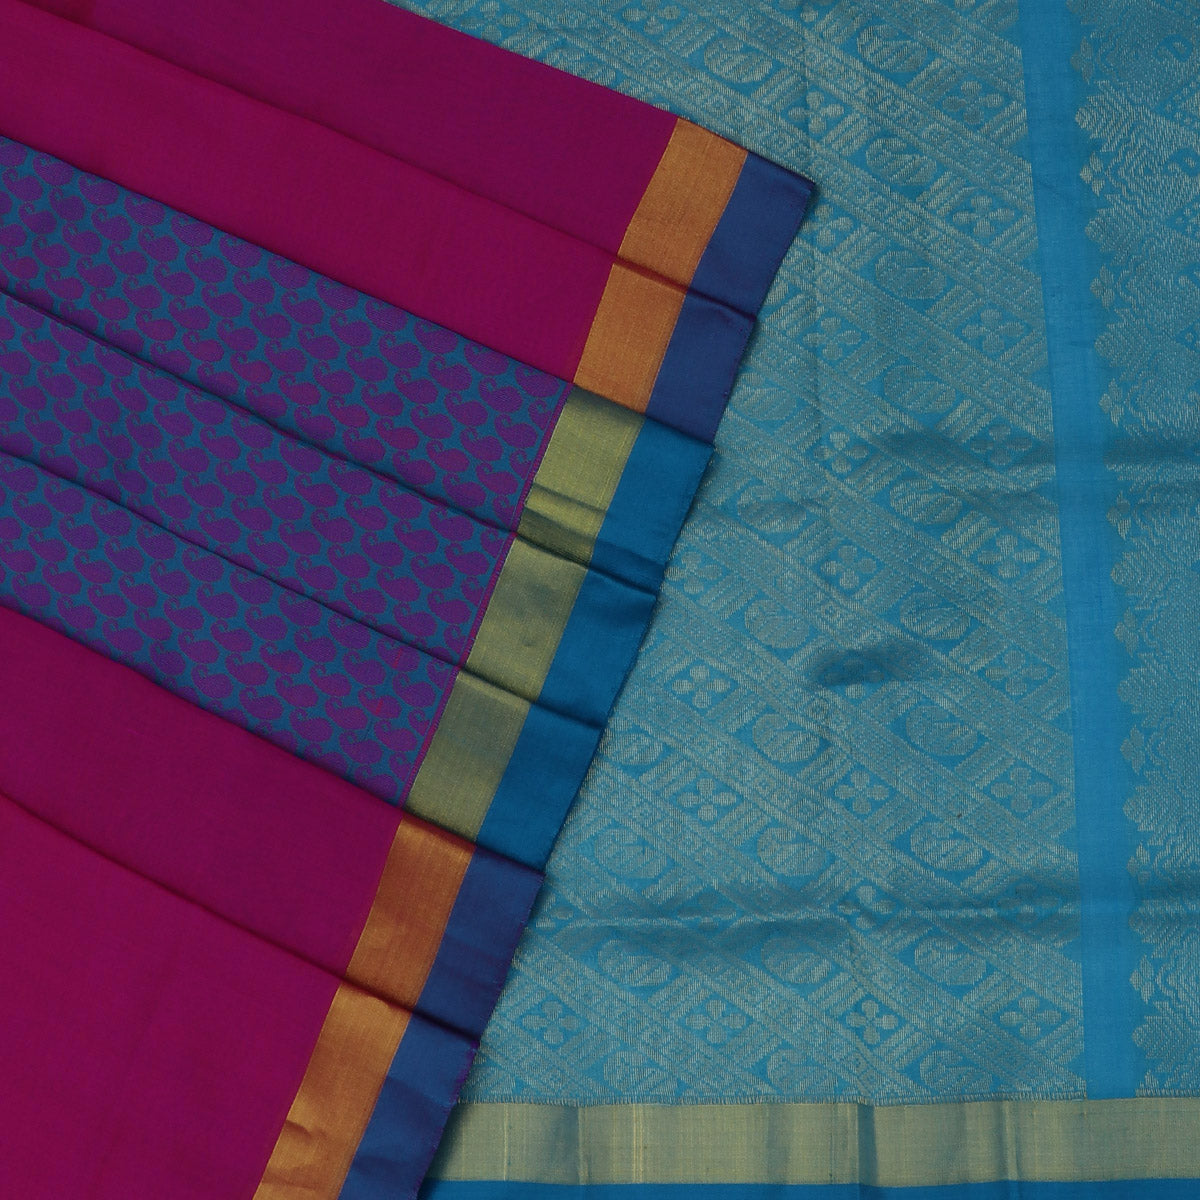 Silk Cotton Saree-Pink and Sky Blue Partly with zari border for Rs.Rs. 4745.00 | Silk Cotton Sarees by Prashanti Sarees